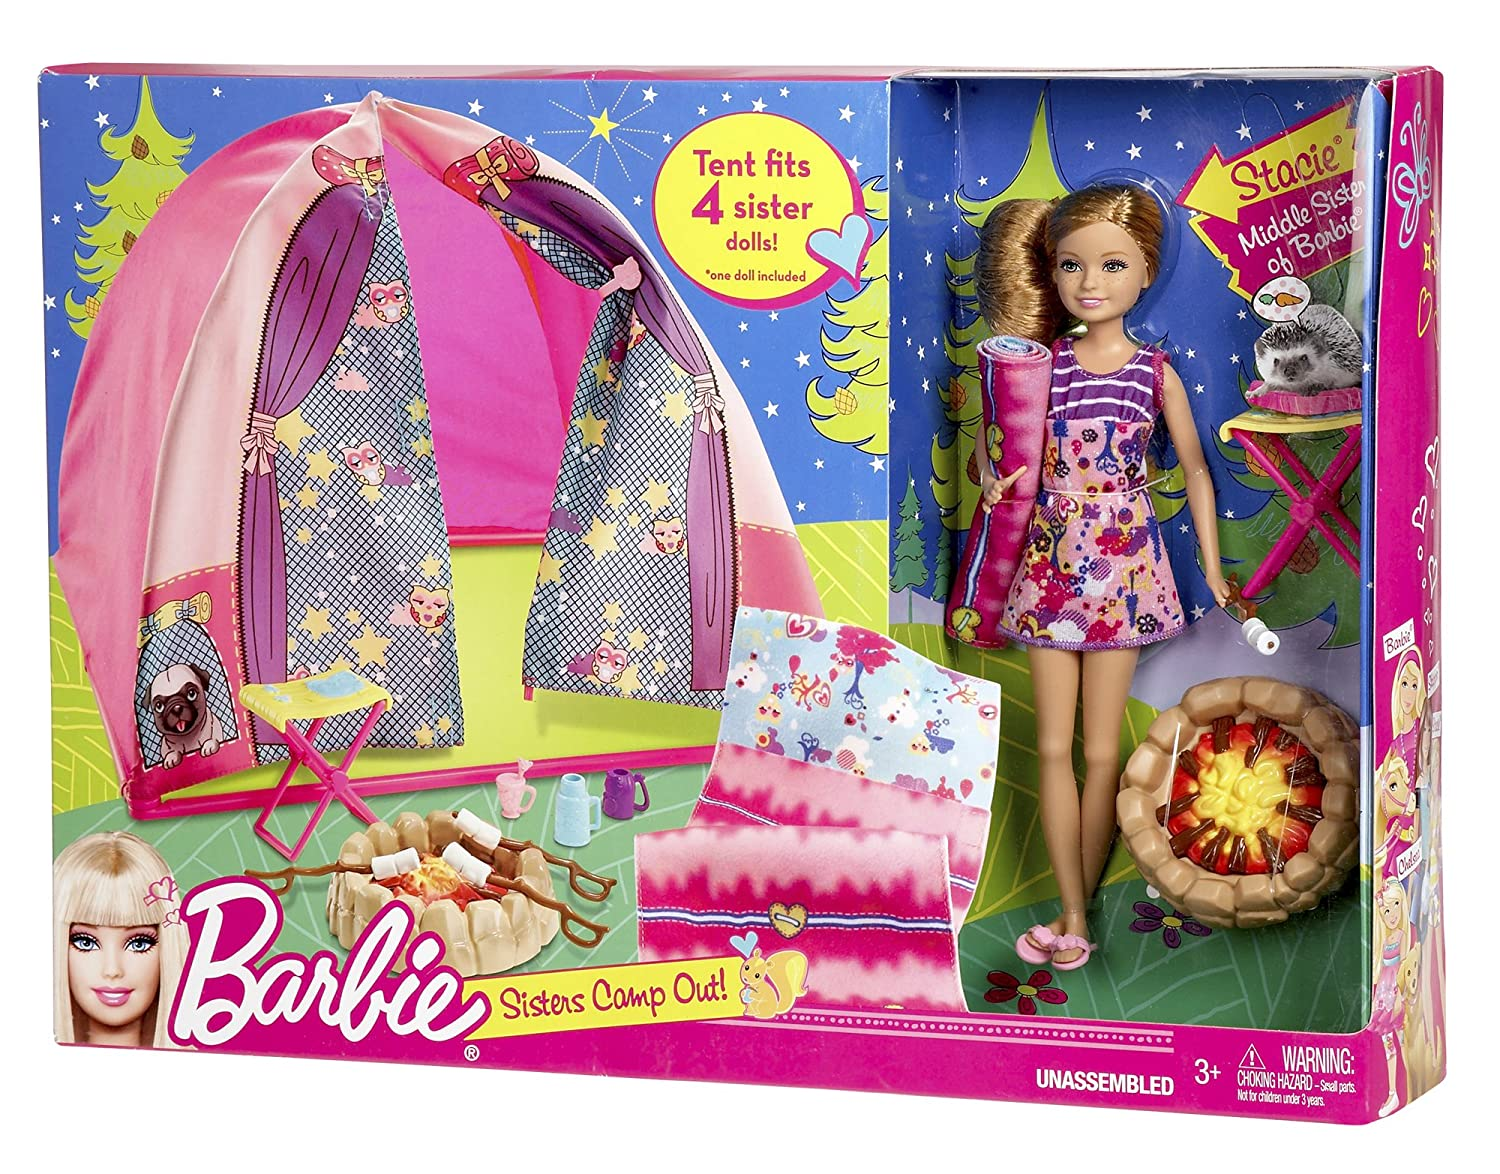 Barbie Sisters C& Out Set with Stacie Doll Tent Sleeping Bag u0026 Accessories Amazon.in Toys u0026 Games  sc 1 st  Amazon India & Barbie Sisters Camp Out Set with Stacie Doll Tent Sleeping Bag ...